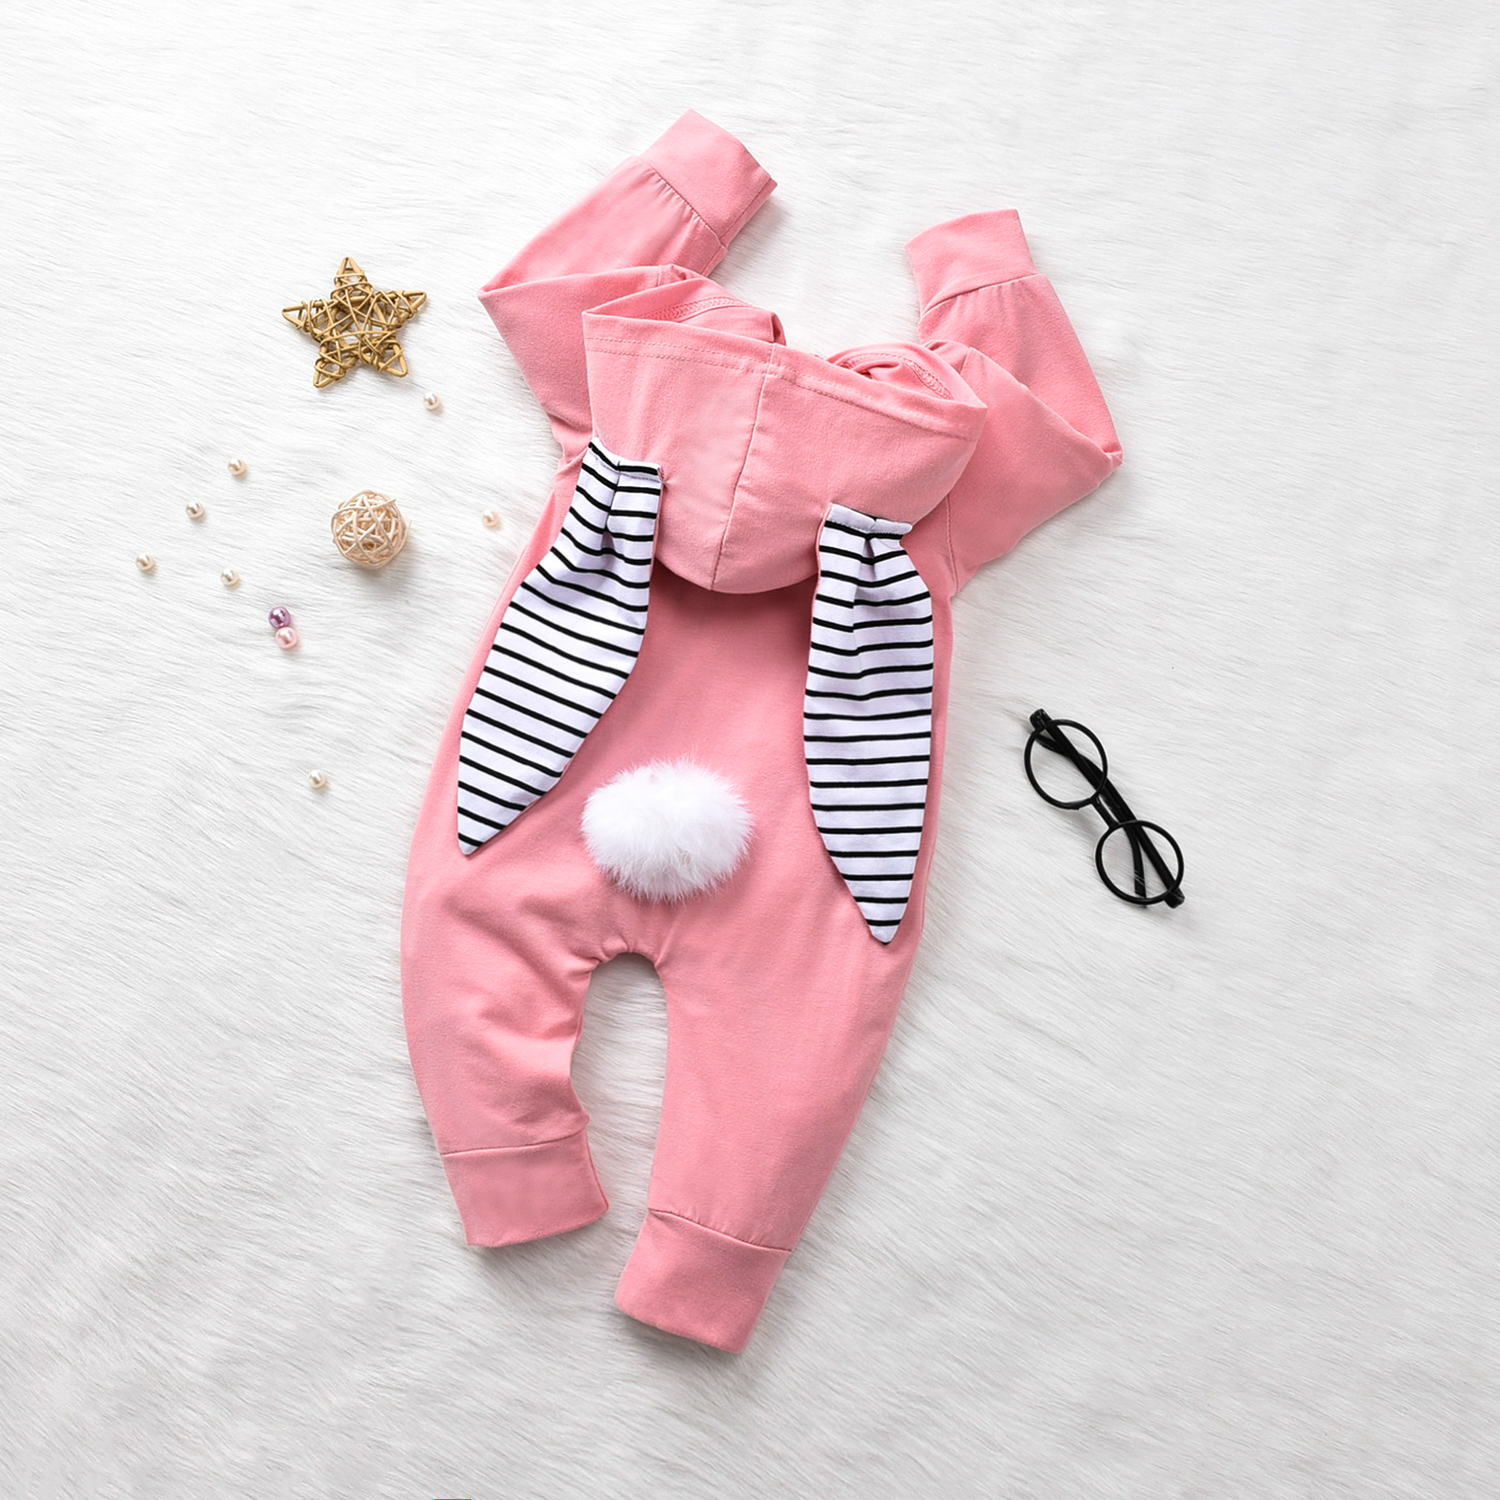 0-24M Newborn Infant <font><b>Baby</b></font> Boy Girl Bunny Romper Long Sleeve Pom Pom Jumpsuit Easter <font><b>Baby</b></font> Costumes Autumn Spring <font><b>Clothes</b></font> image